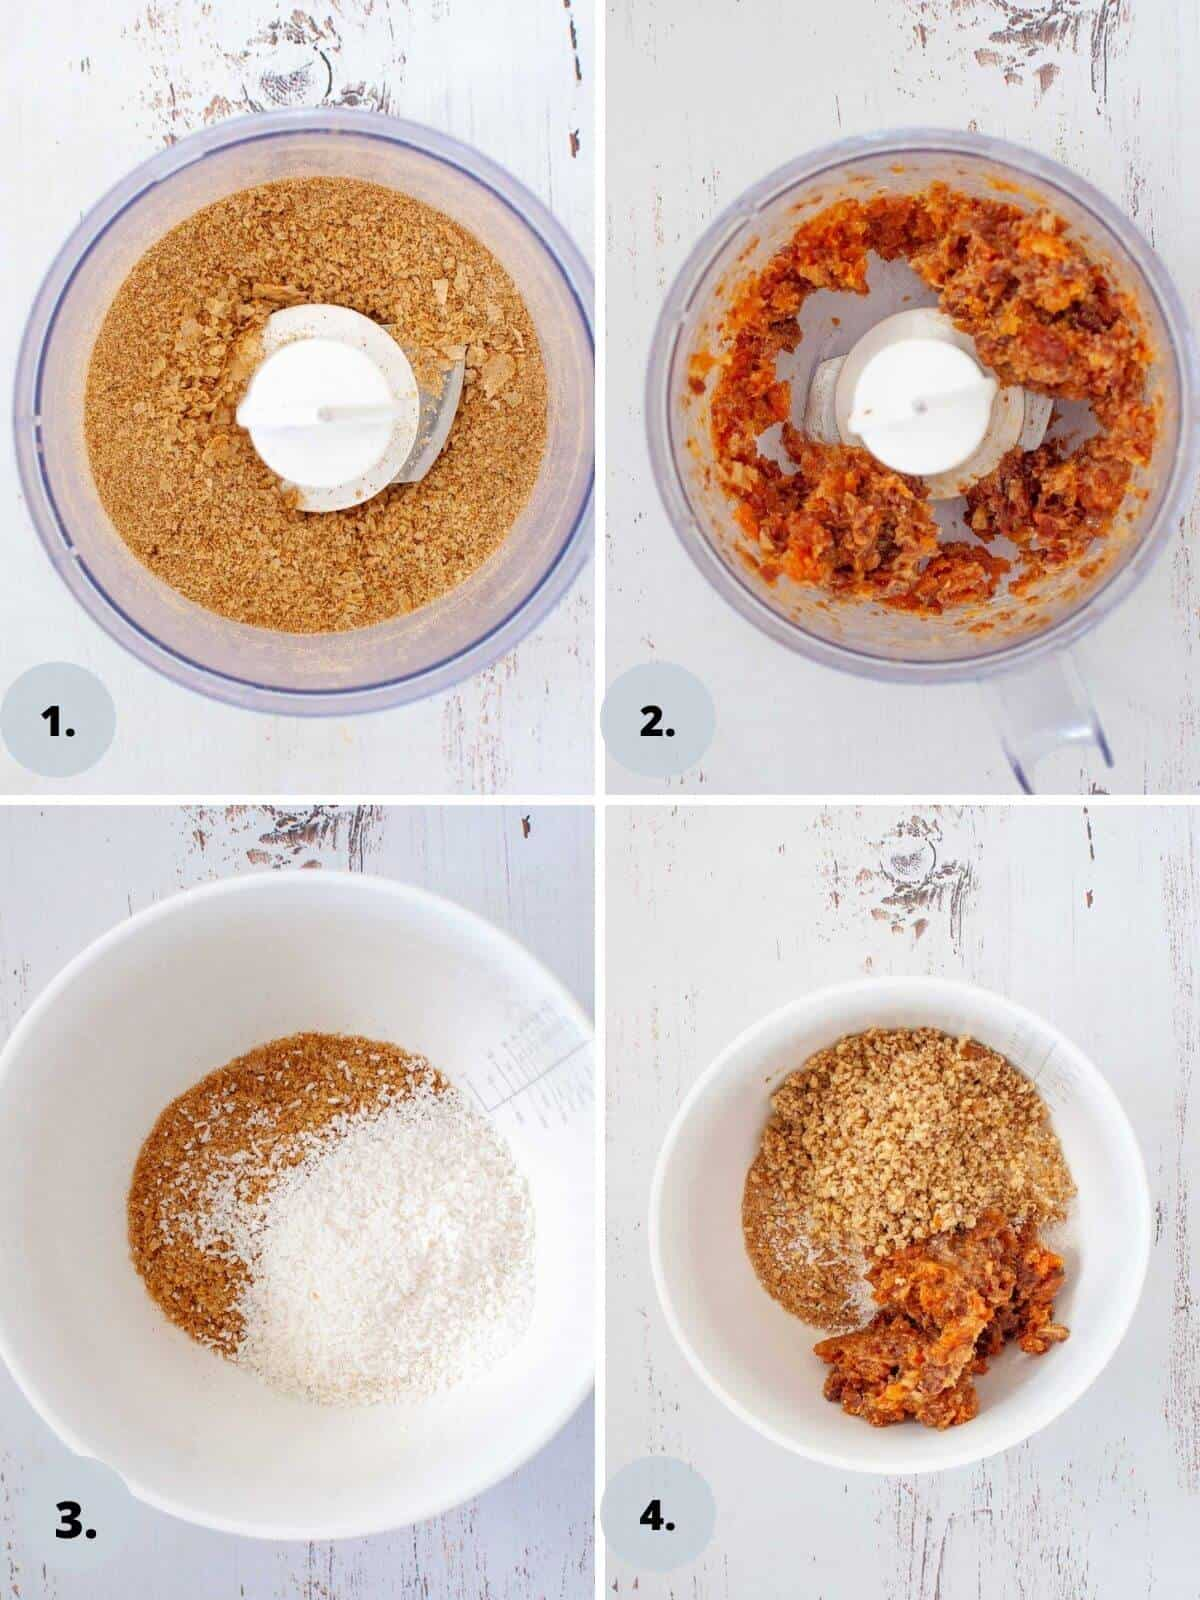 blitzing ingredients in food processor for weetbix slice base